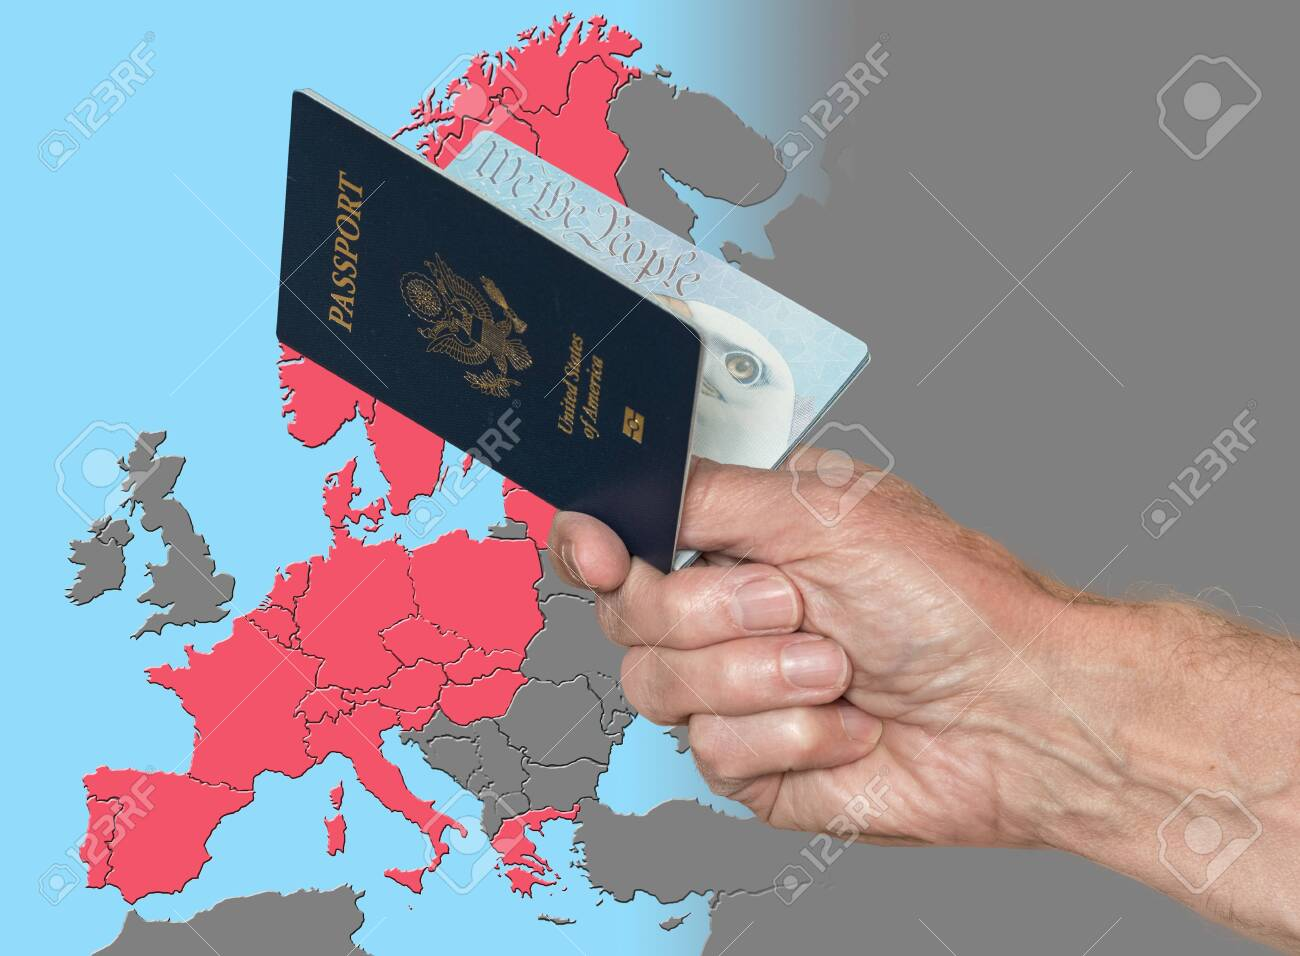 Senior man holding US pport on map of Schengen Zone of European.. on printable labeled united states map, man with map, man in america map, the man in the map, usa map, man tracking, man u smap, black population in america map, man united states, mimal on the map, pink map, u.s map, man in the mississippi, man island england, the man on the map, douglas isle of man map, iom map, man in trunk, dude in the map, syria map,